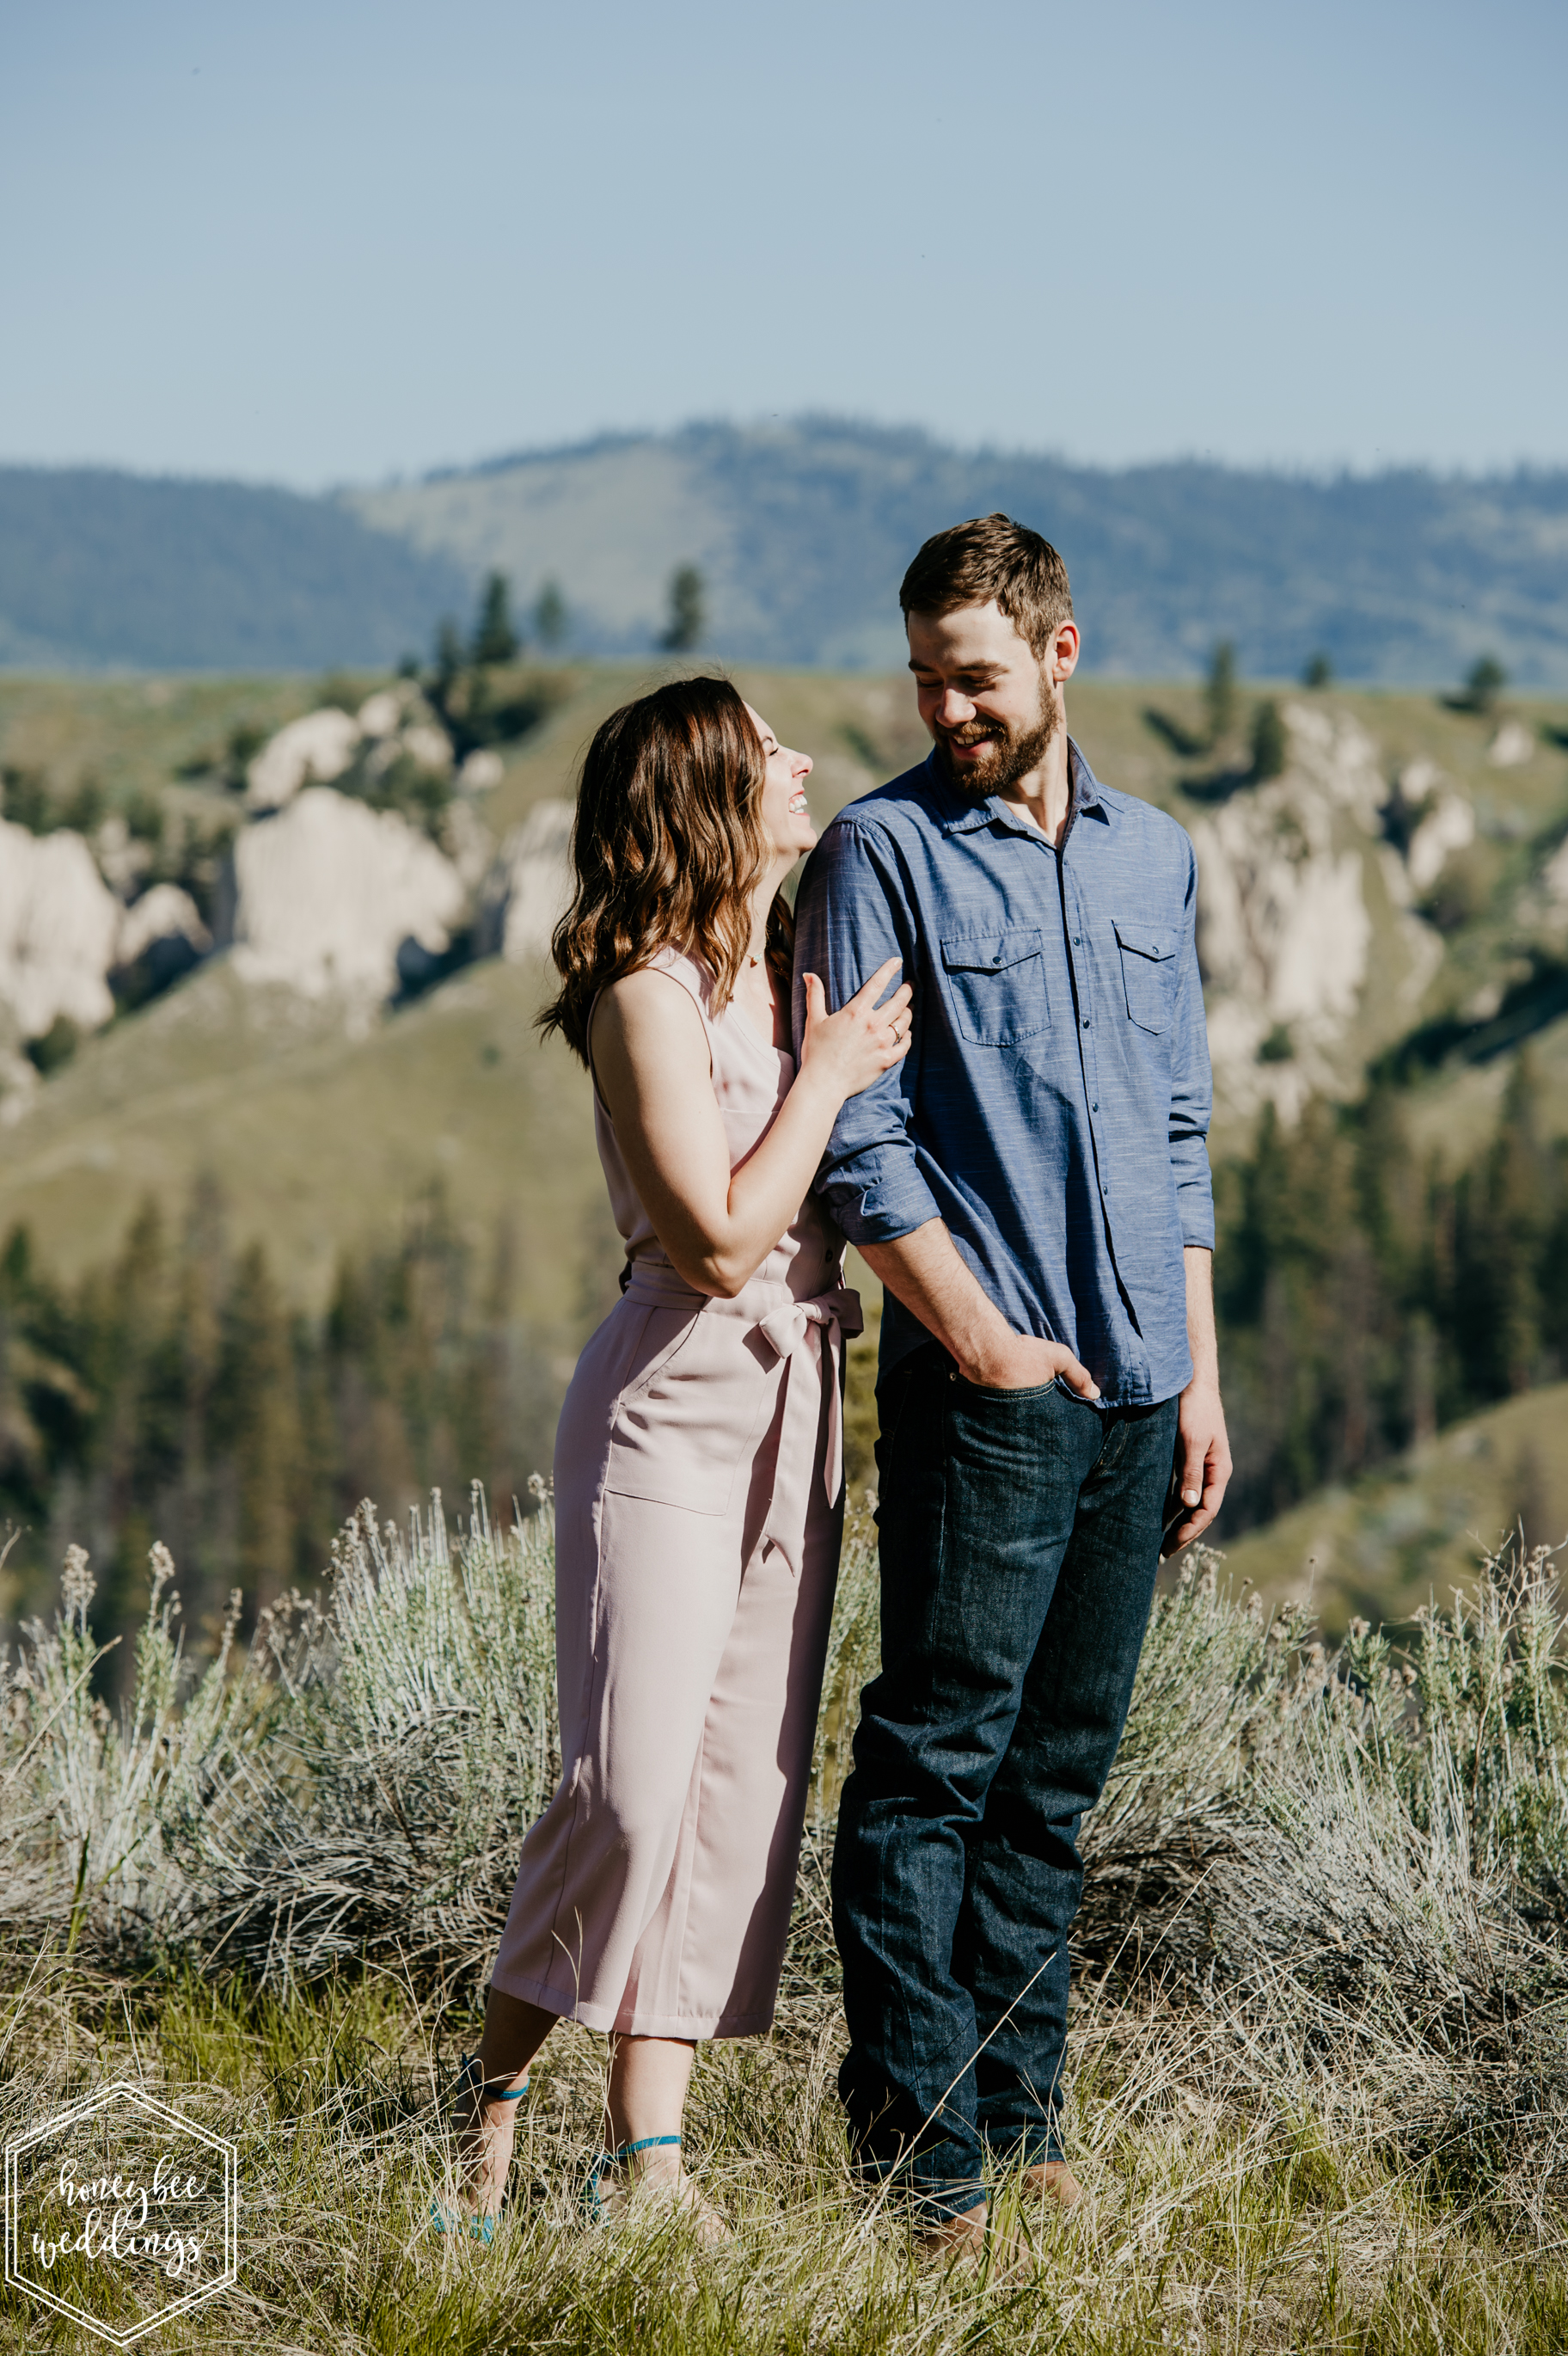 103Montana Wedding Photographer_Polson Engagement Session_Carrie & Matt_Honeybee Weddings_May 11, 2019-124.jpg